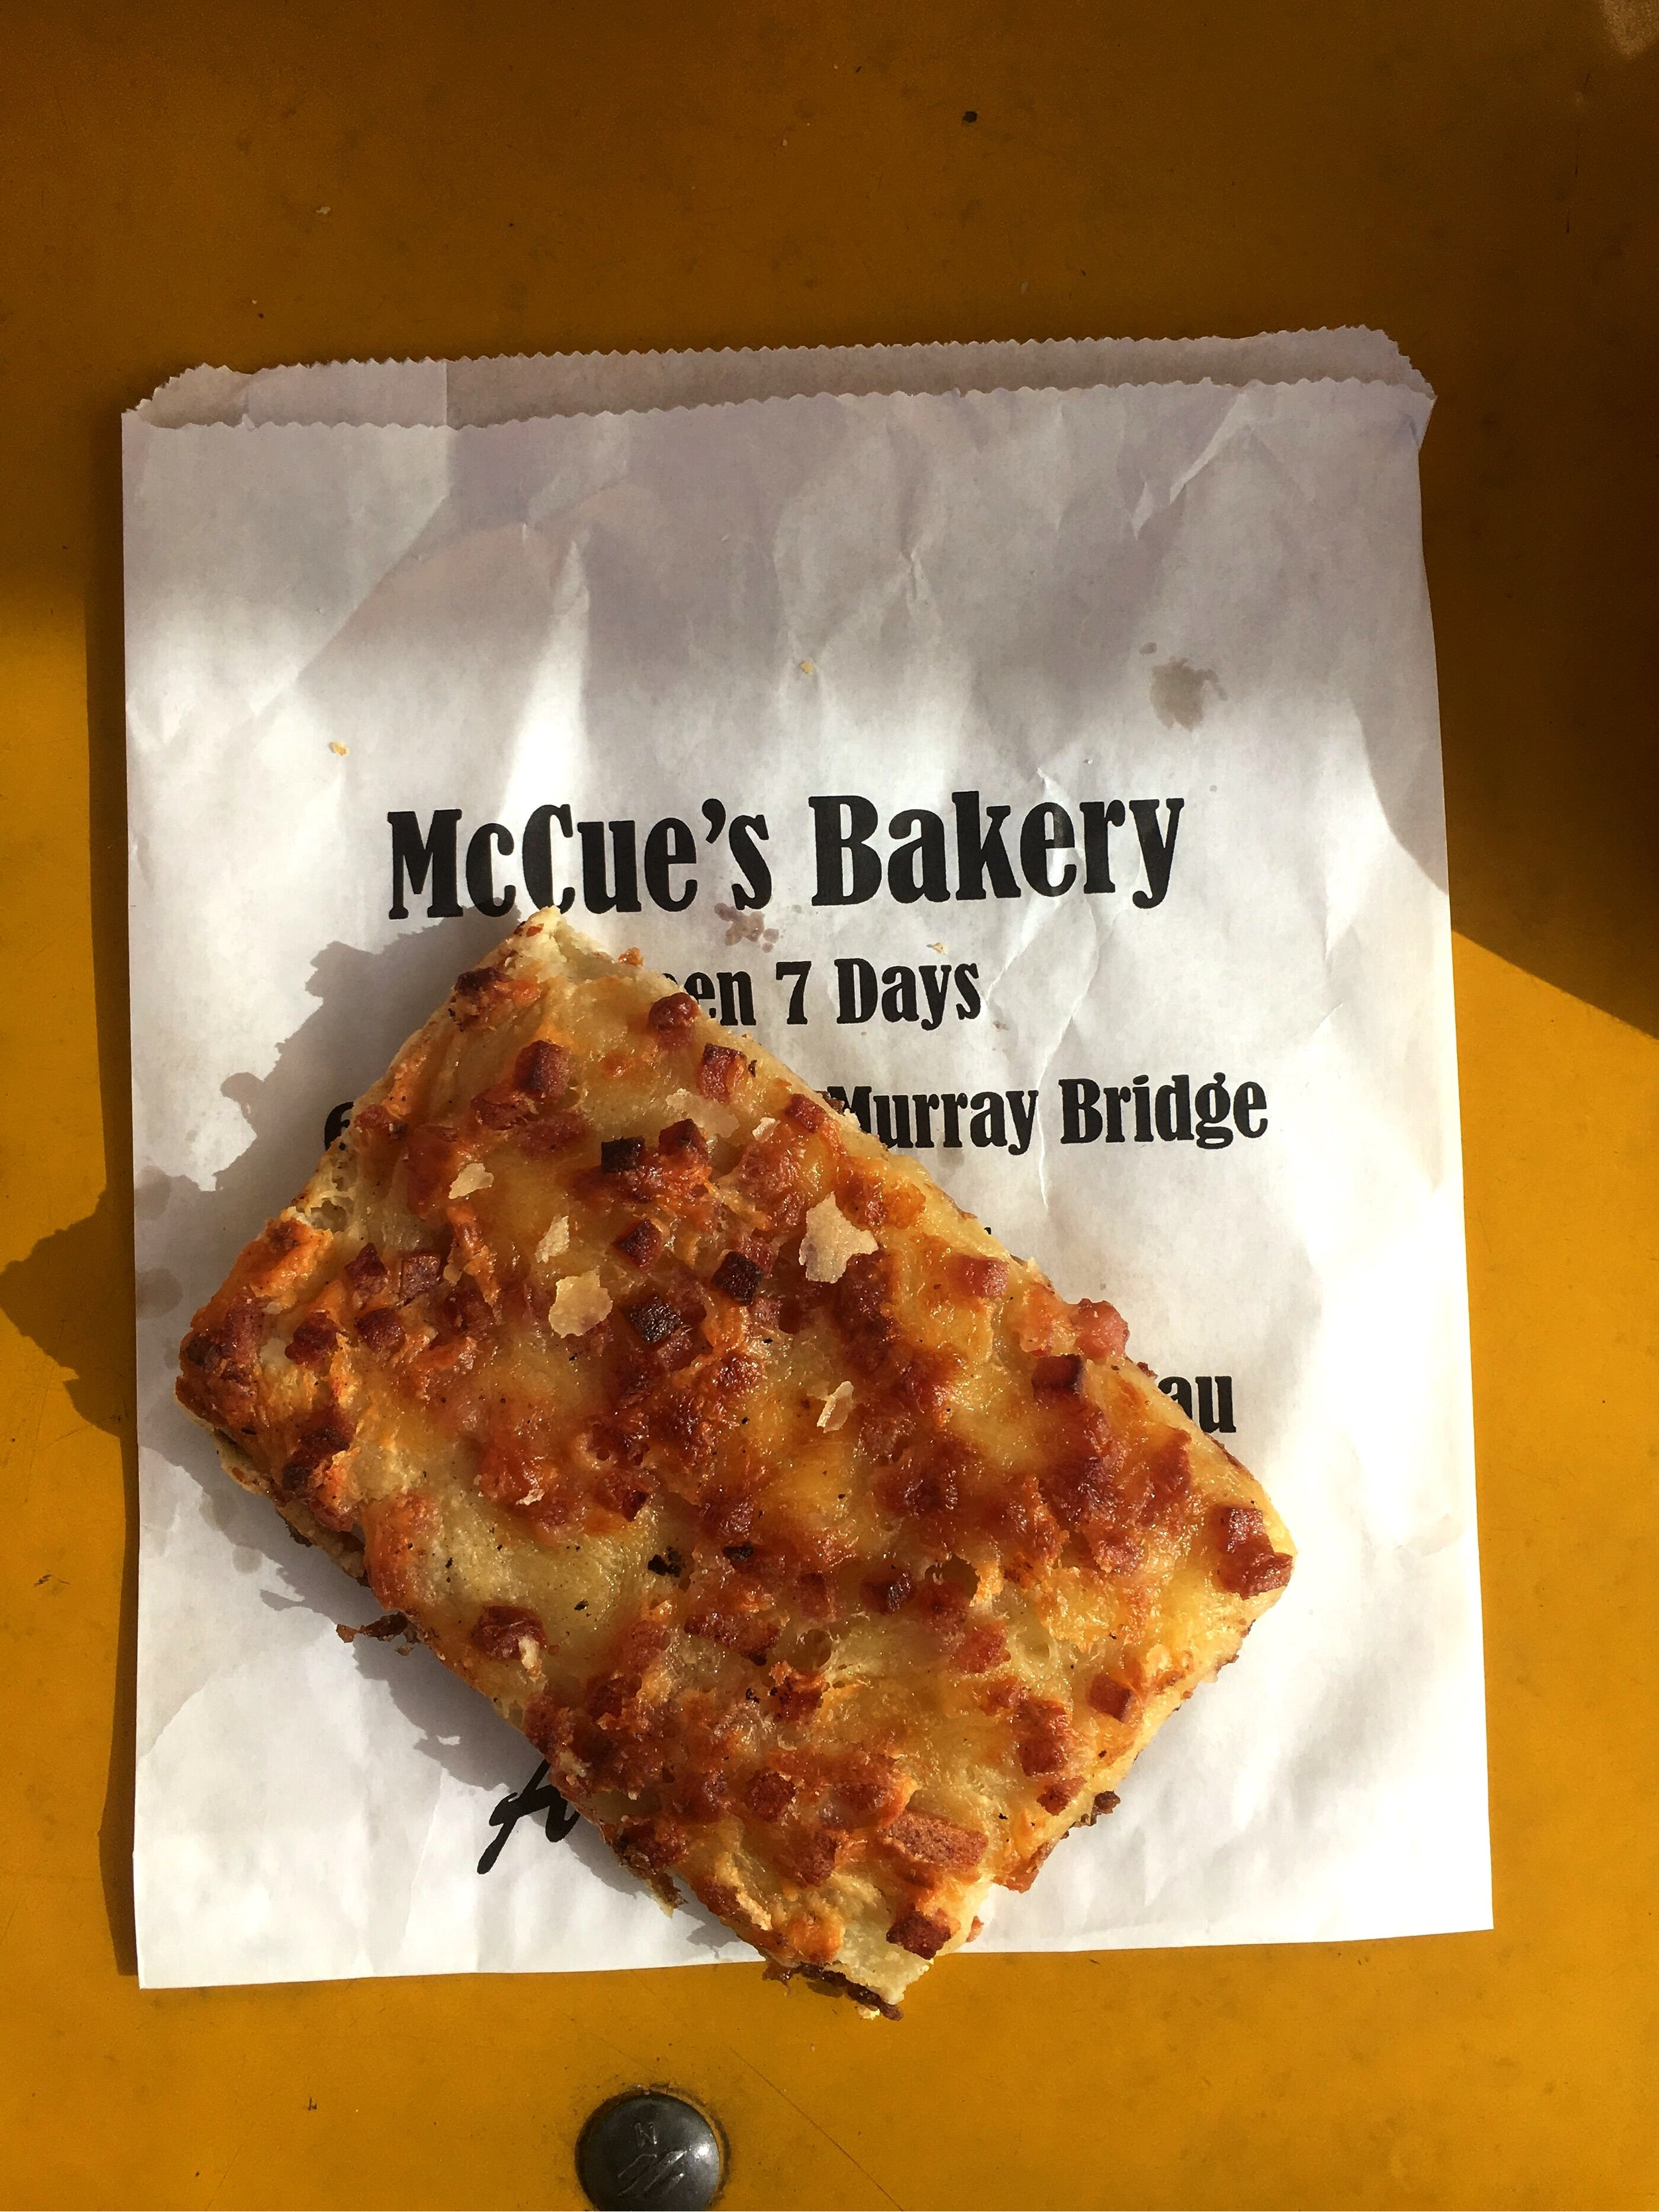 McCue's Bakery may just be the slice champion.